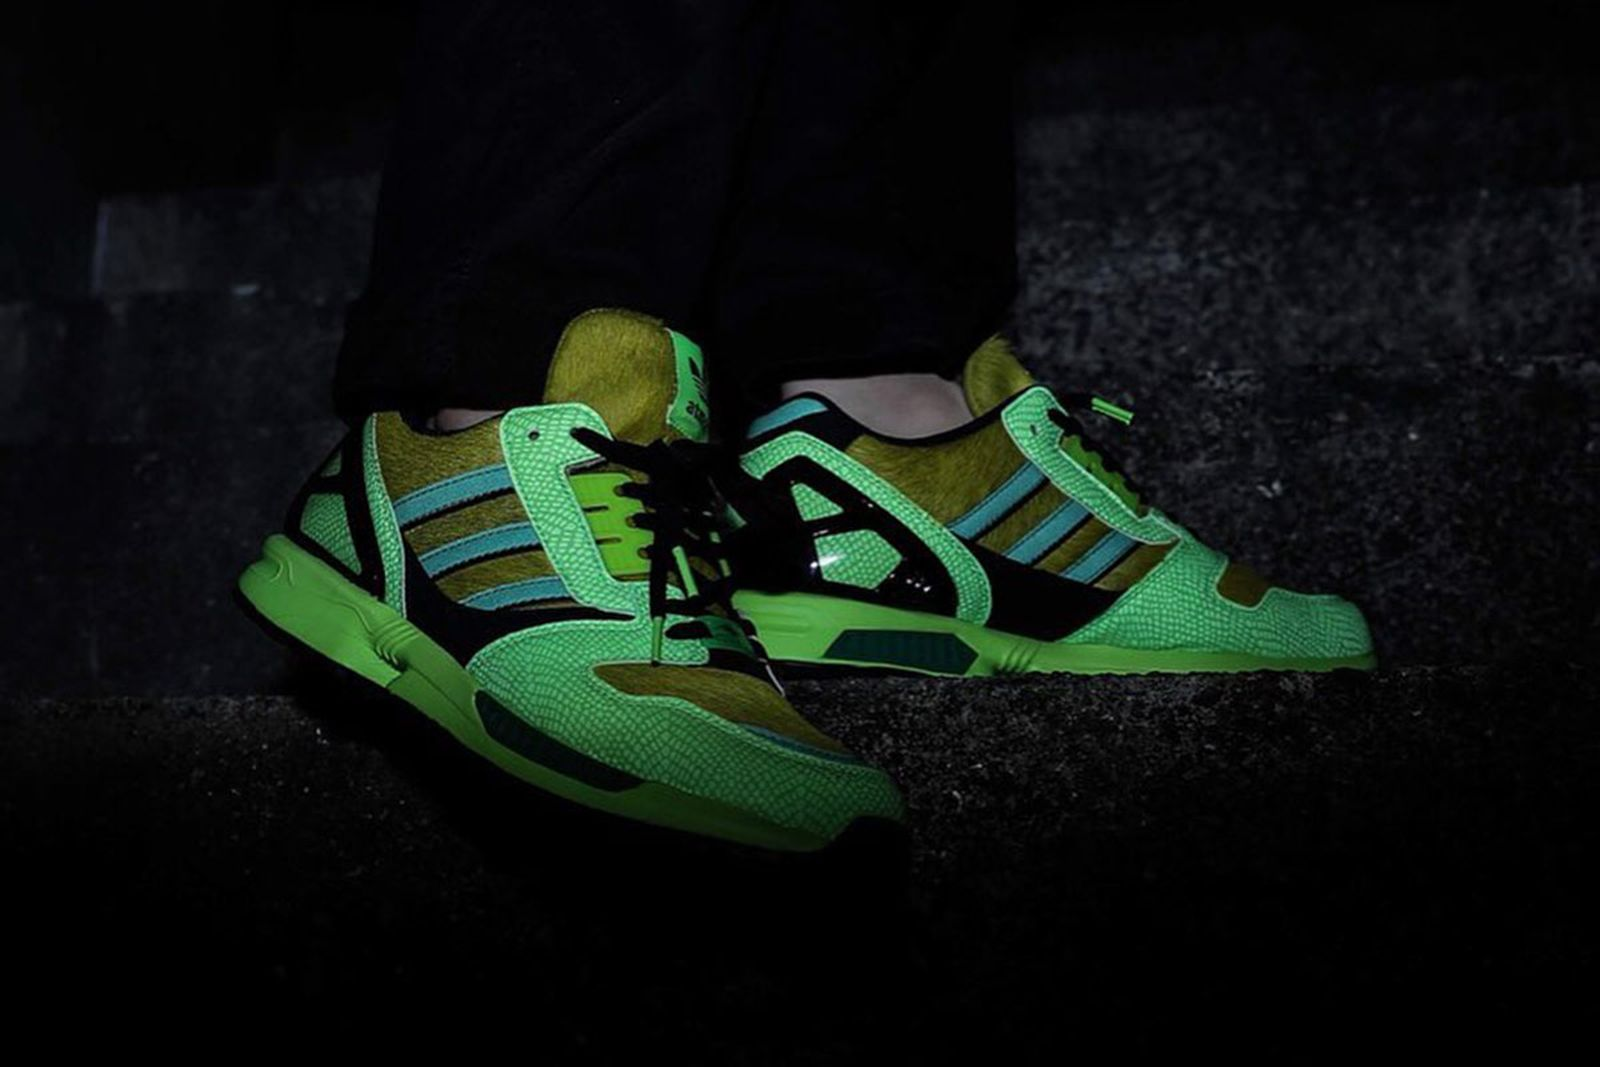 atmos x adidas ZX 8000 side profile view glow in the dark